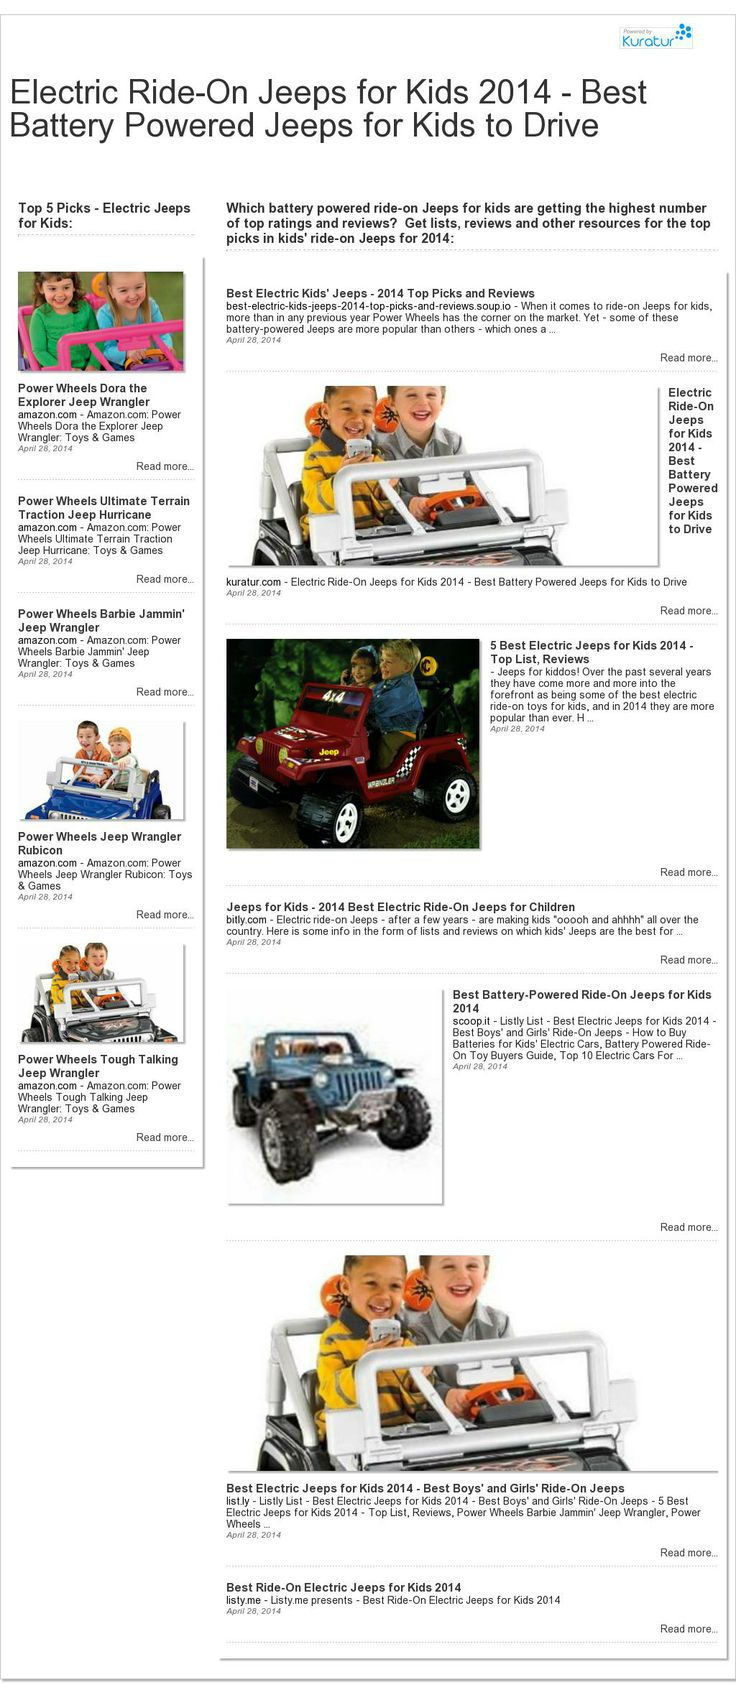 23 best 12 volt ride on toys images on pinterest ride on toys power wheels and kids toys